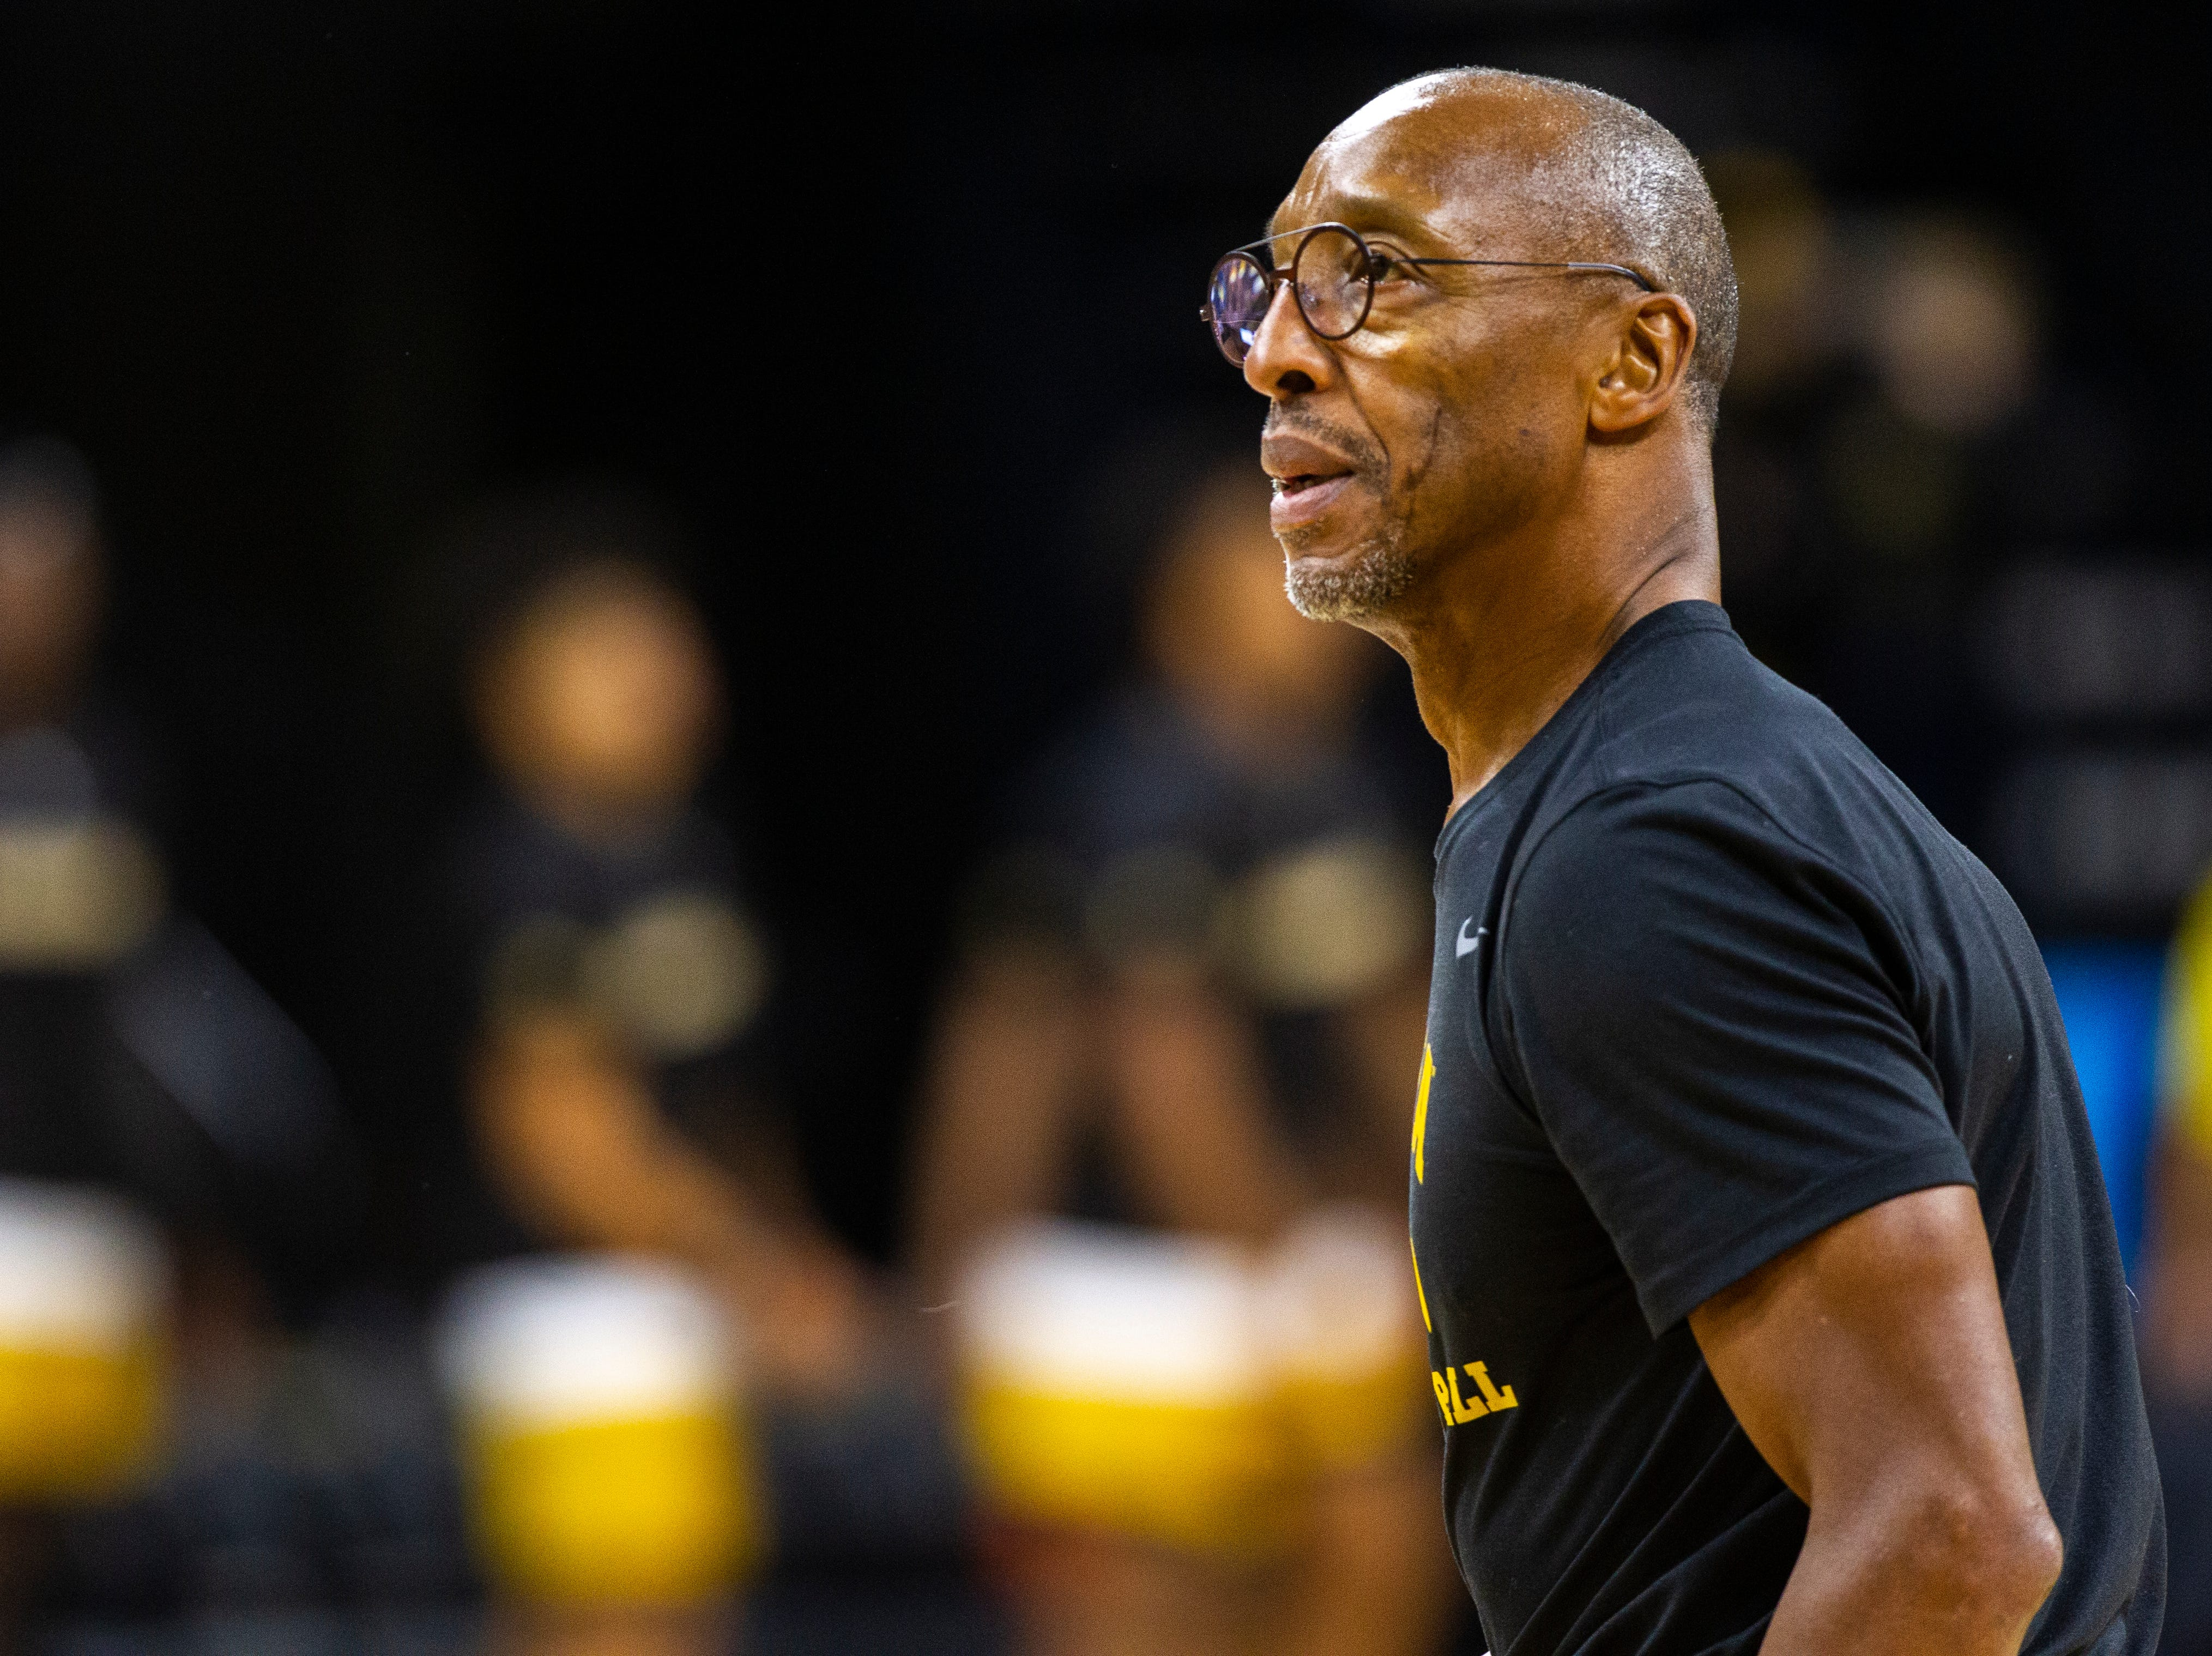 Iowa assistant coach Sherman Dillard is seen before an NCAA men's basketball game on Wednesday, Nov. 21, 2018, at Carver-Hawkeye Arena in Iowa City.